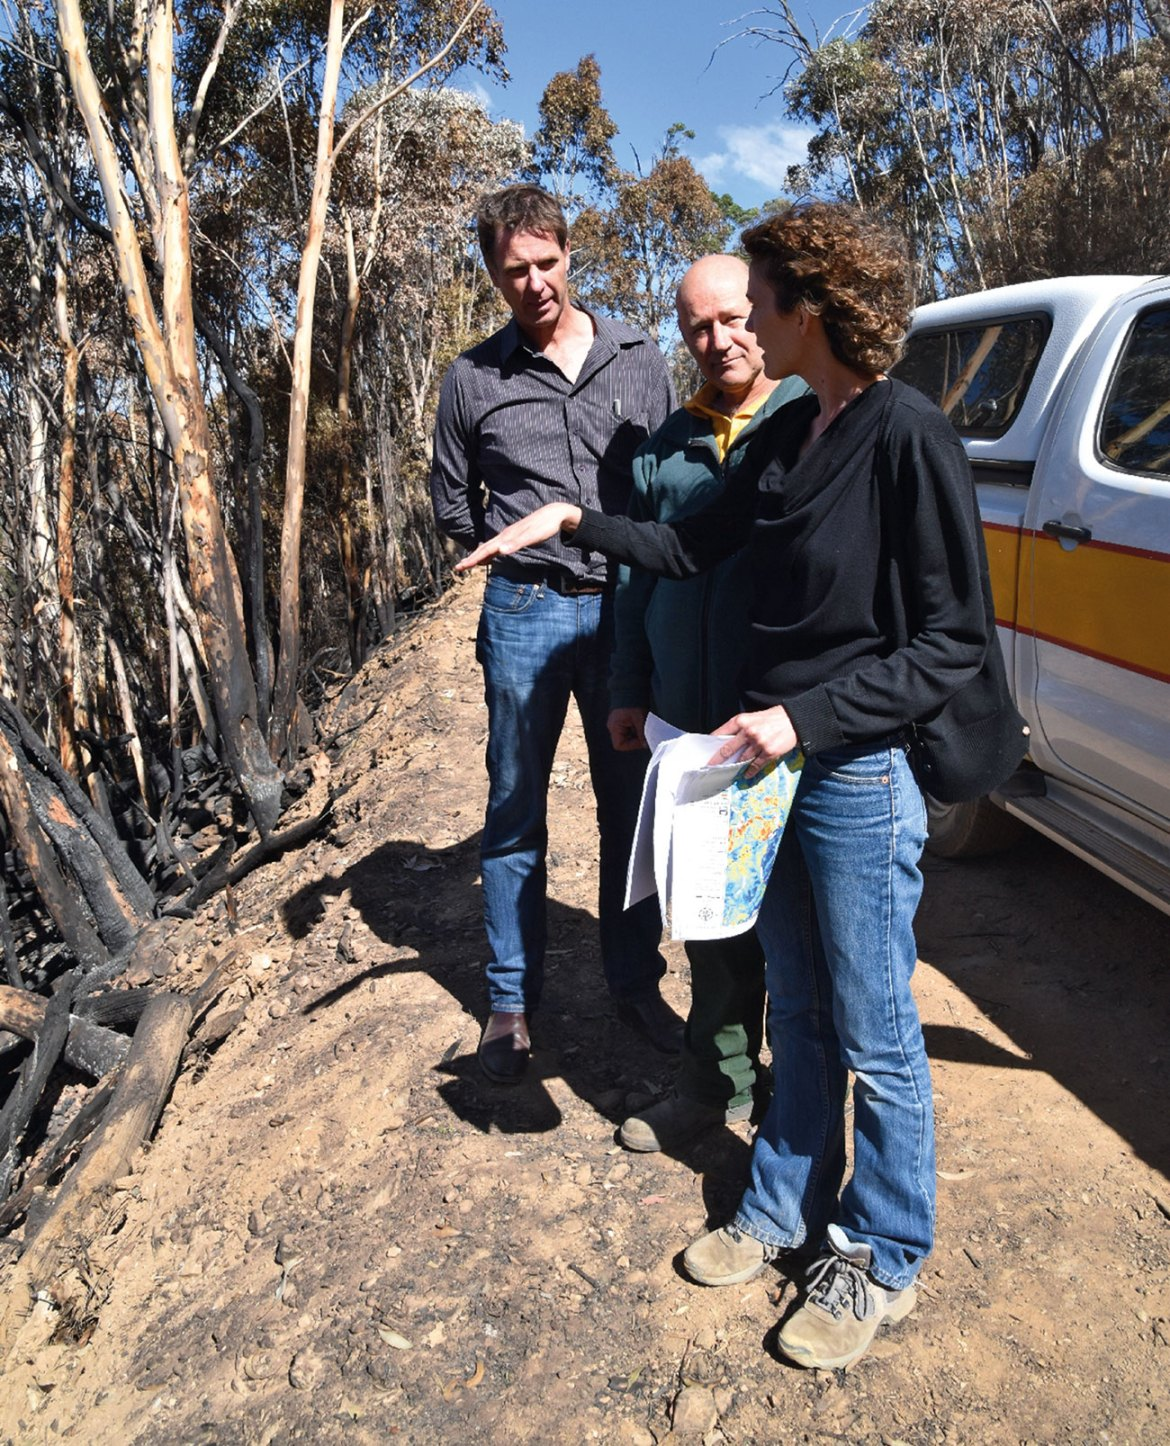 Dr Marta Yebra (right) examines the bush after a prescribed burn with Dr Matt Hayne from the Bushfire and Natural Hazards CRC and Dr Adam Leavesley.